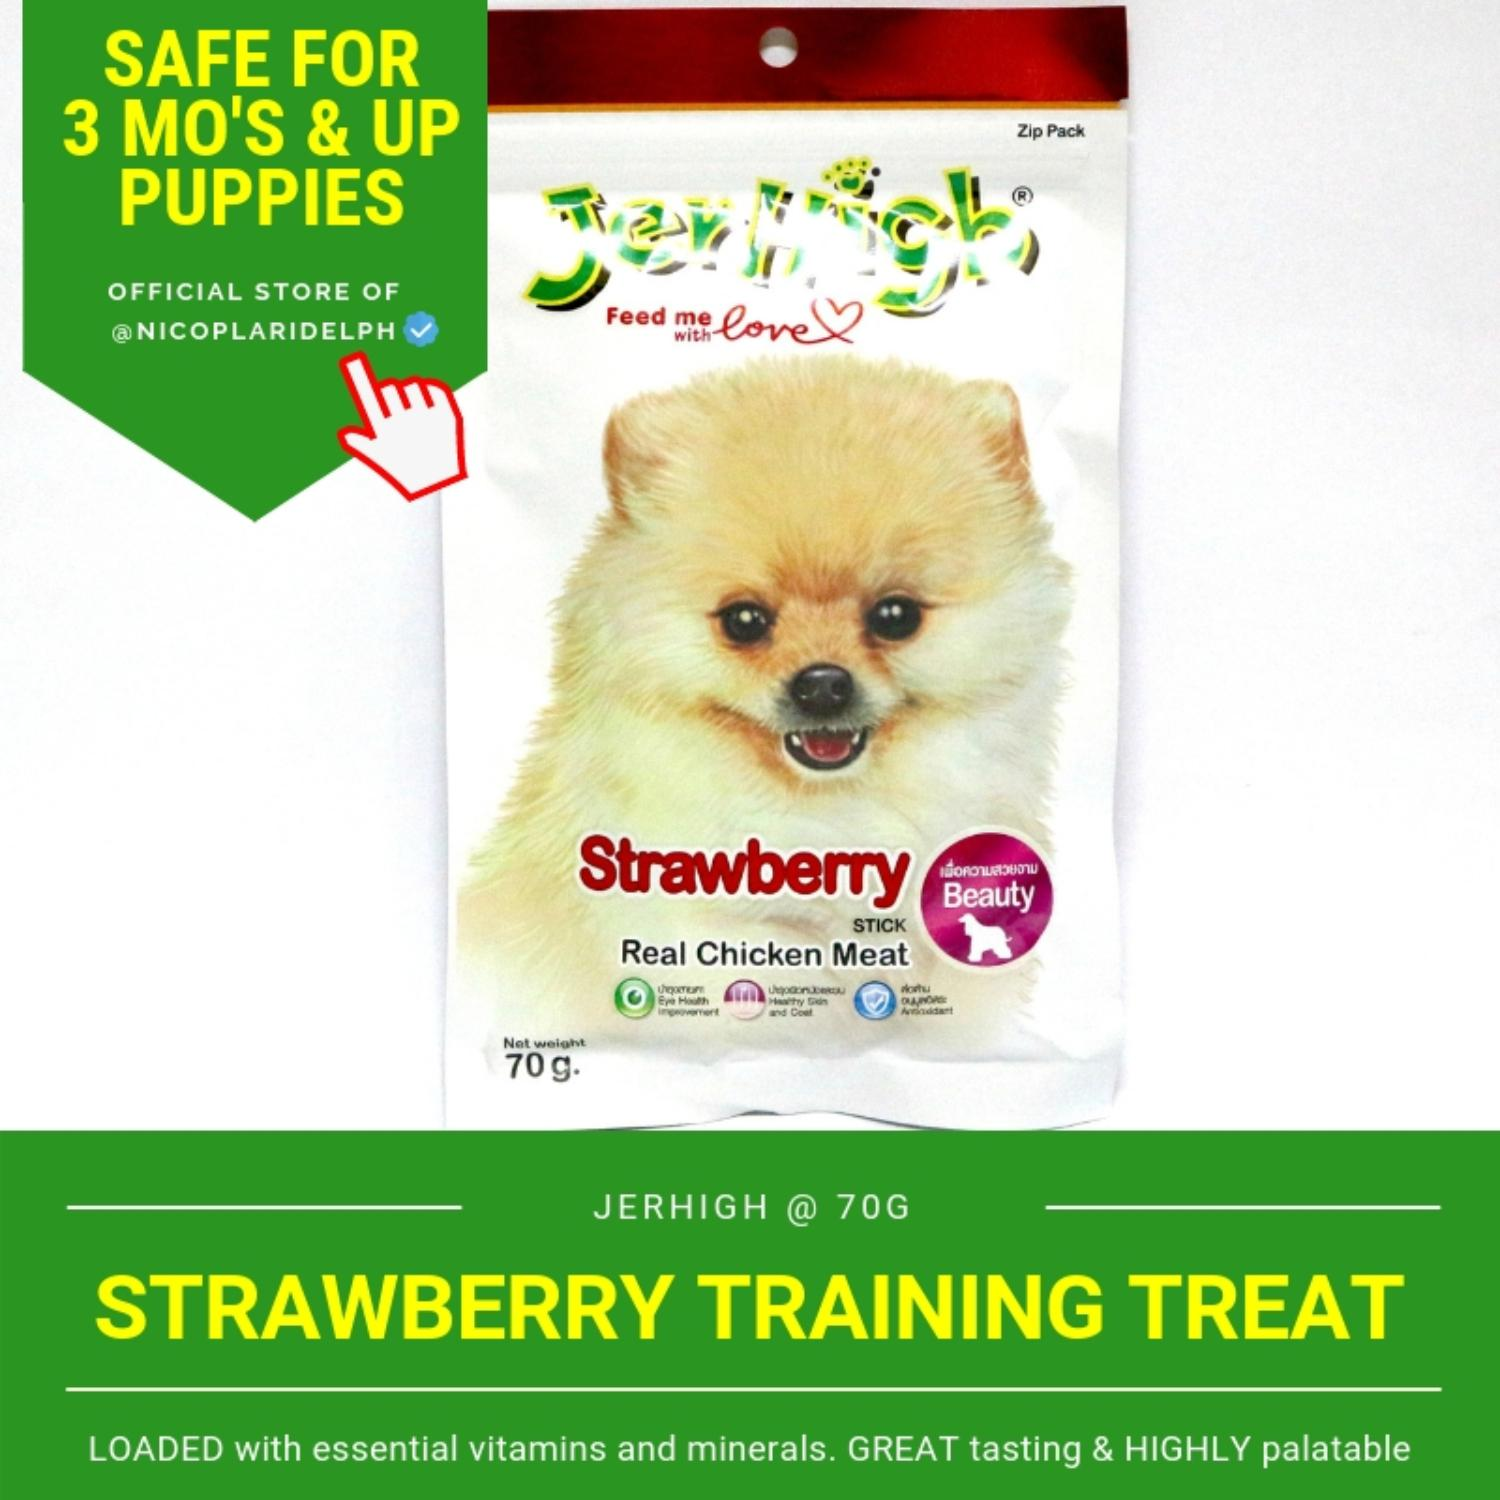 Jerhigh Strawberry Stick With Real Chicken Meat For Puppies And Adult Dogs (70g) By Nicoplaridelph.